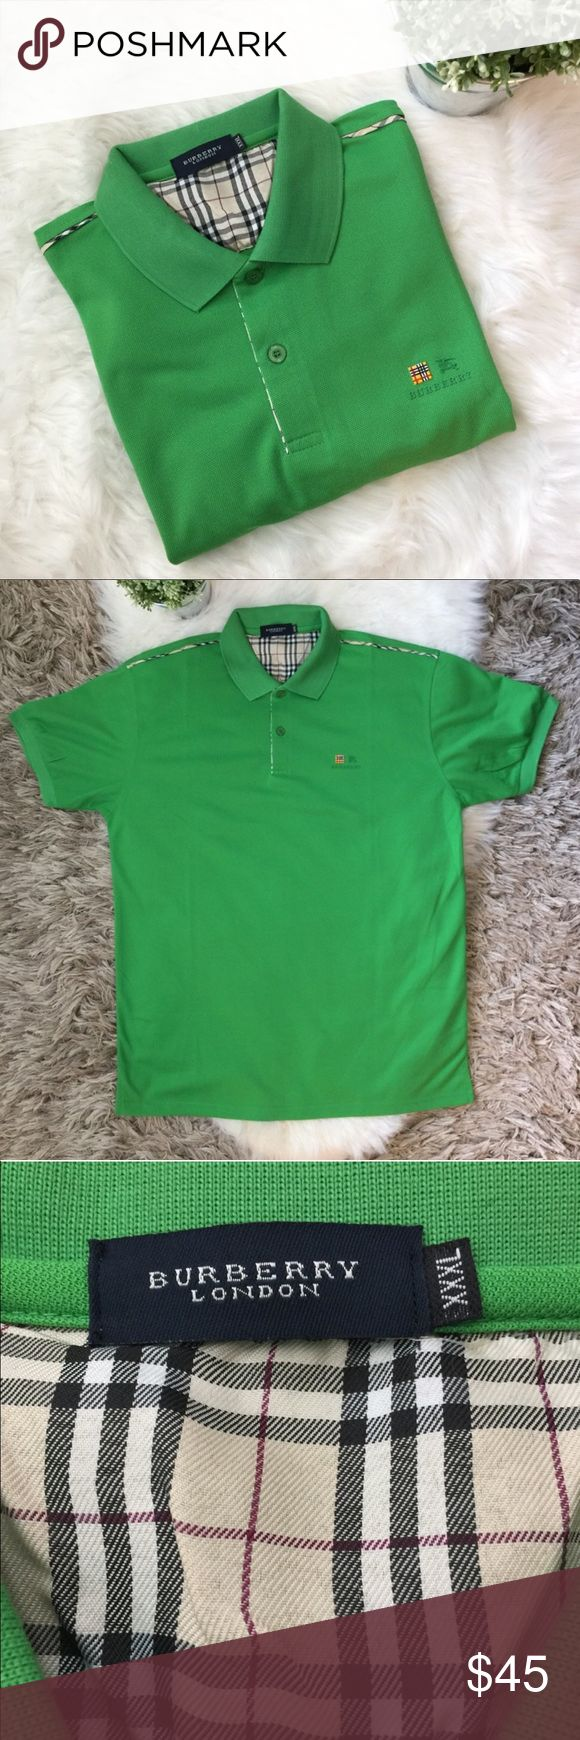 """Men's Burberry London Green Polo Collared Shirt Men's Burberry London short sleeved collared shirt in a bright green color. Rare rubber Burberry logo in left chest.  Burberry plaid on inner lining of buttons and a strip on shoulders. Excellent used condition. Inside tags have been removed. Size XXXL. Please see all measurements. Measurements laying flat, pit to pit: 22.5"""", length (shoulder to bottom): 29"""", sleeves: 8.25"""". Burberry Shirts Polos"""